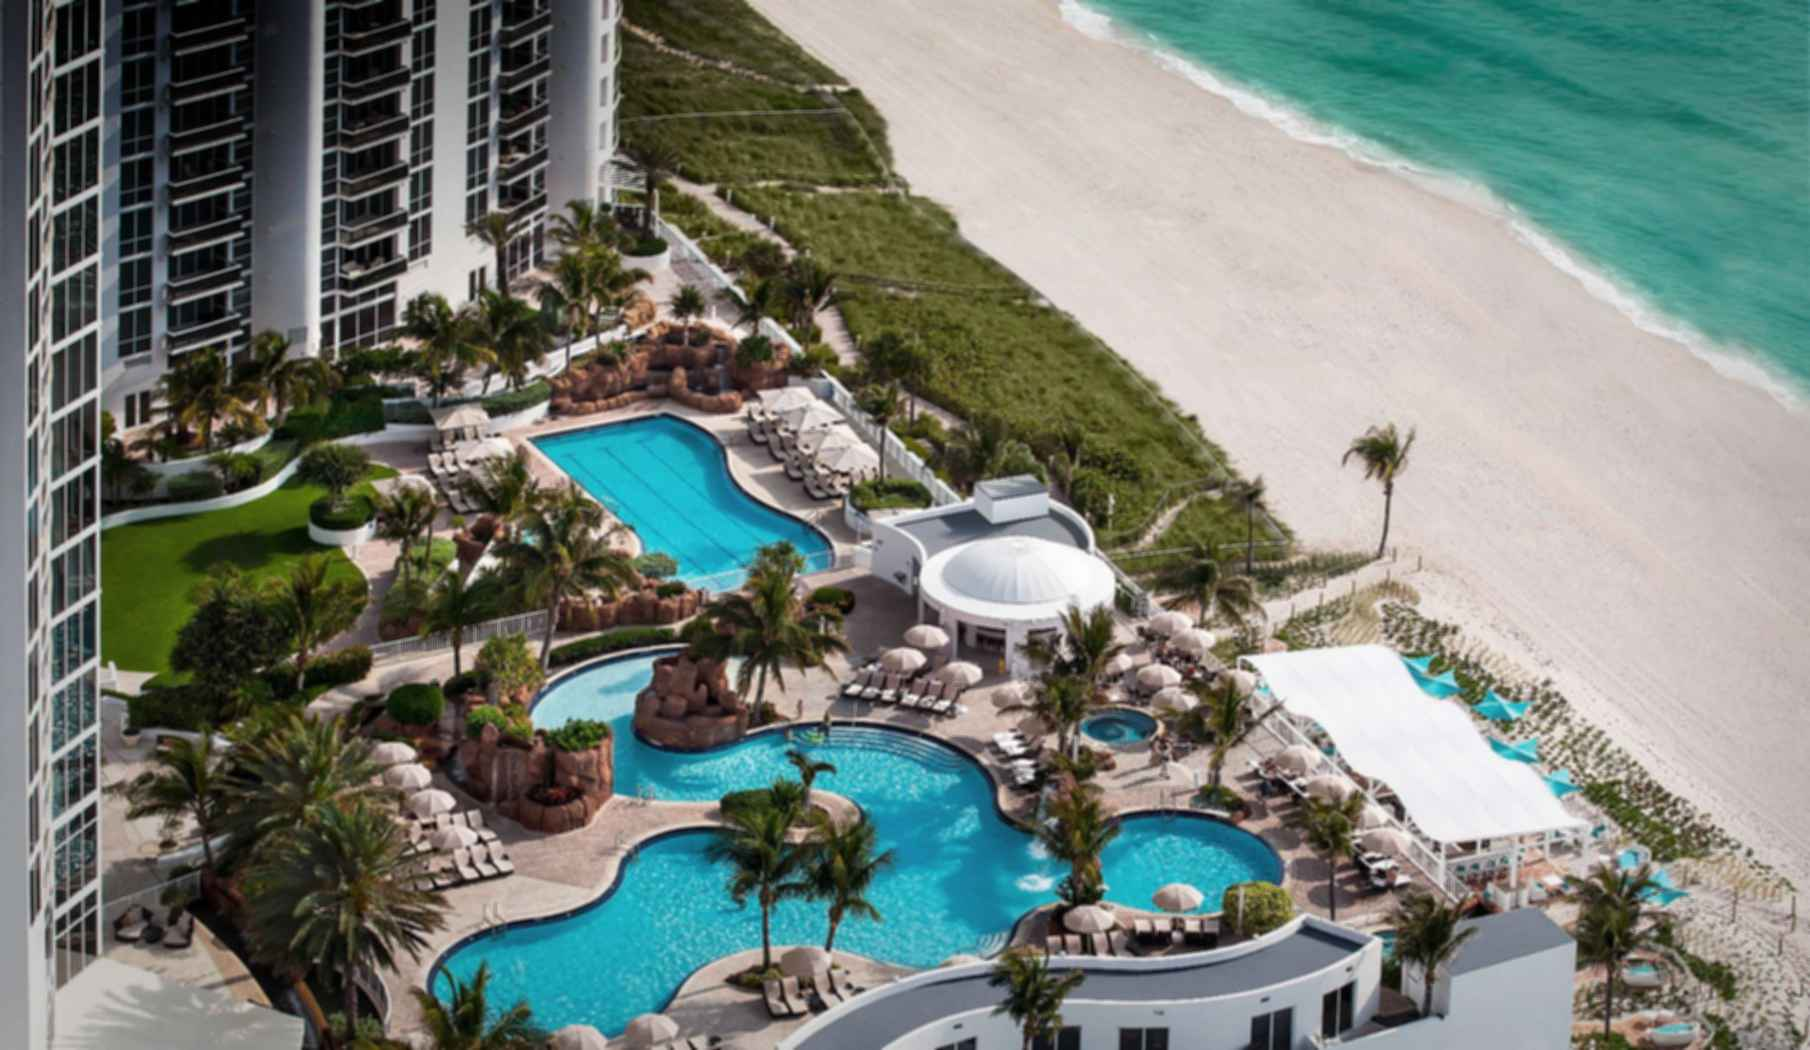 Trump International Beach Resort, Florida - Exterior/Pool